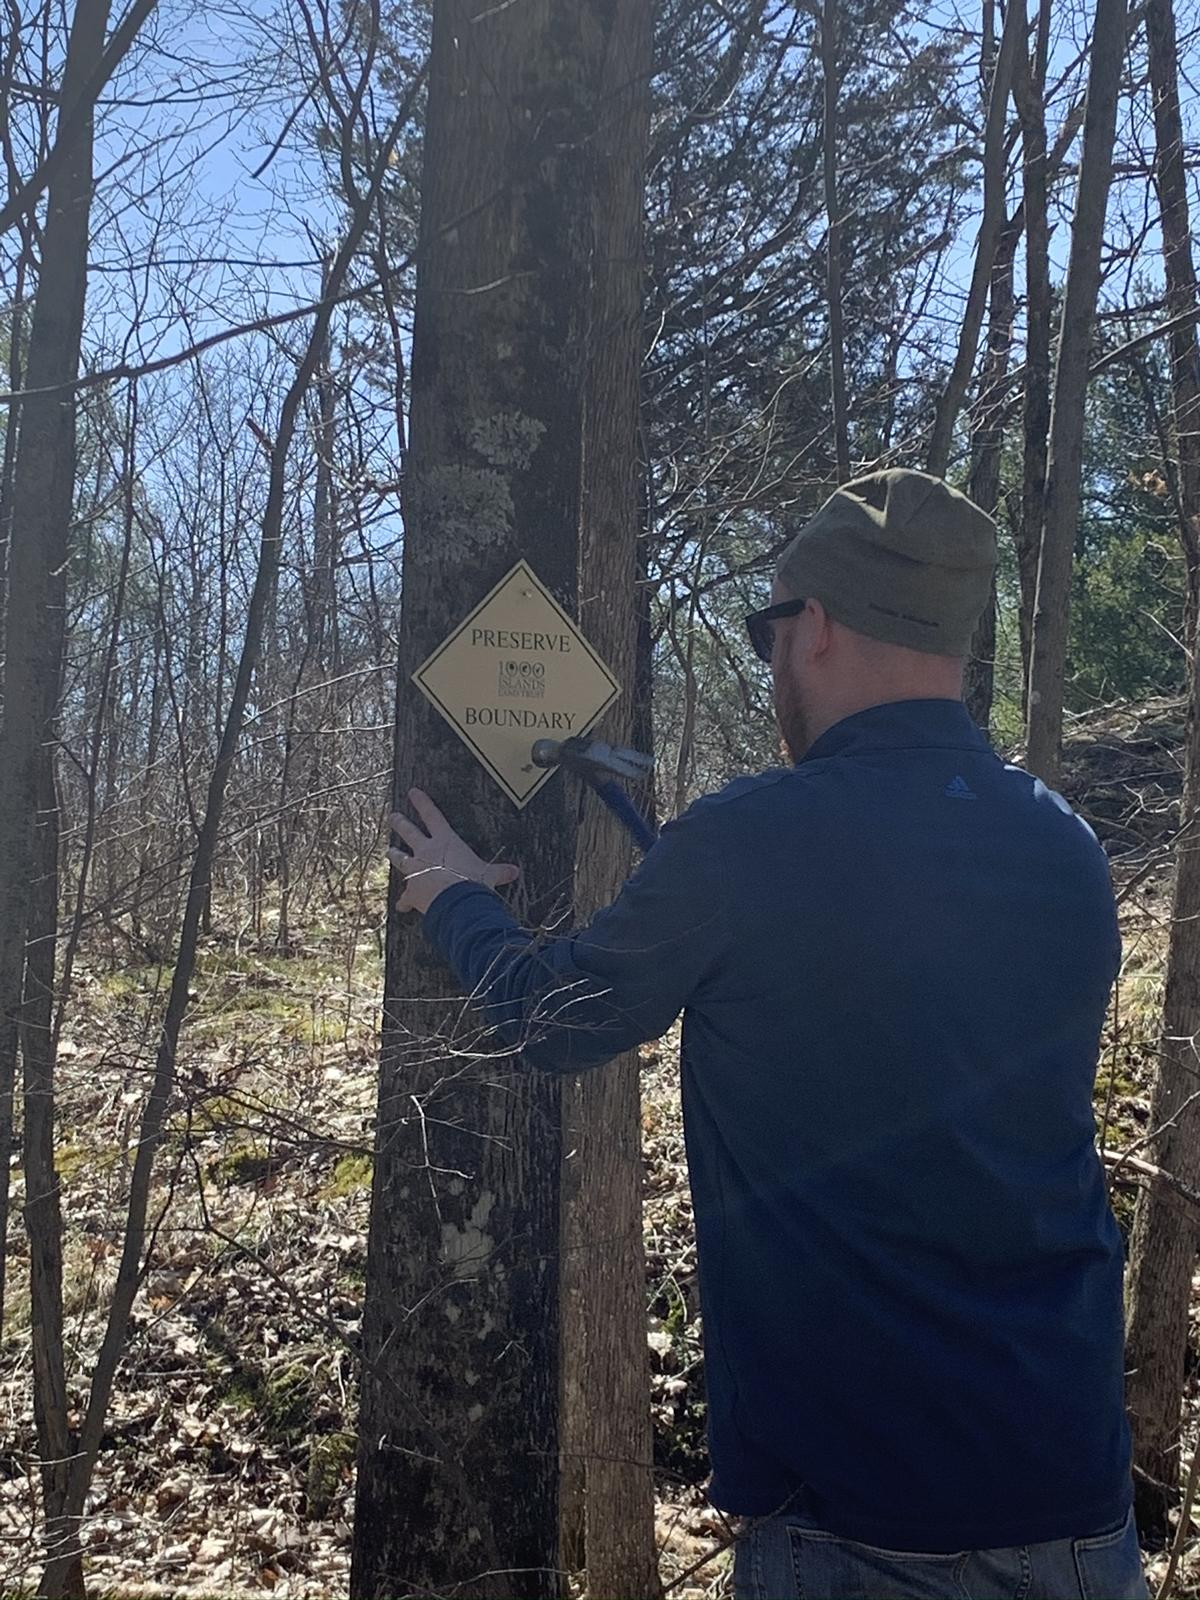 Brandon Hollis, Stewardship Director, marks a preserve boundary, part of the careful stewardship practice that protects conserved lands in perpetuity.